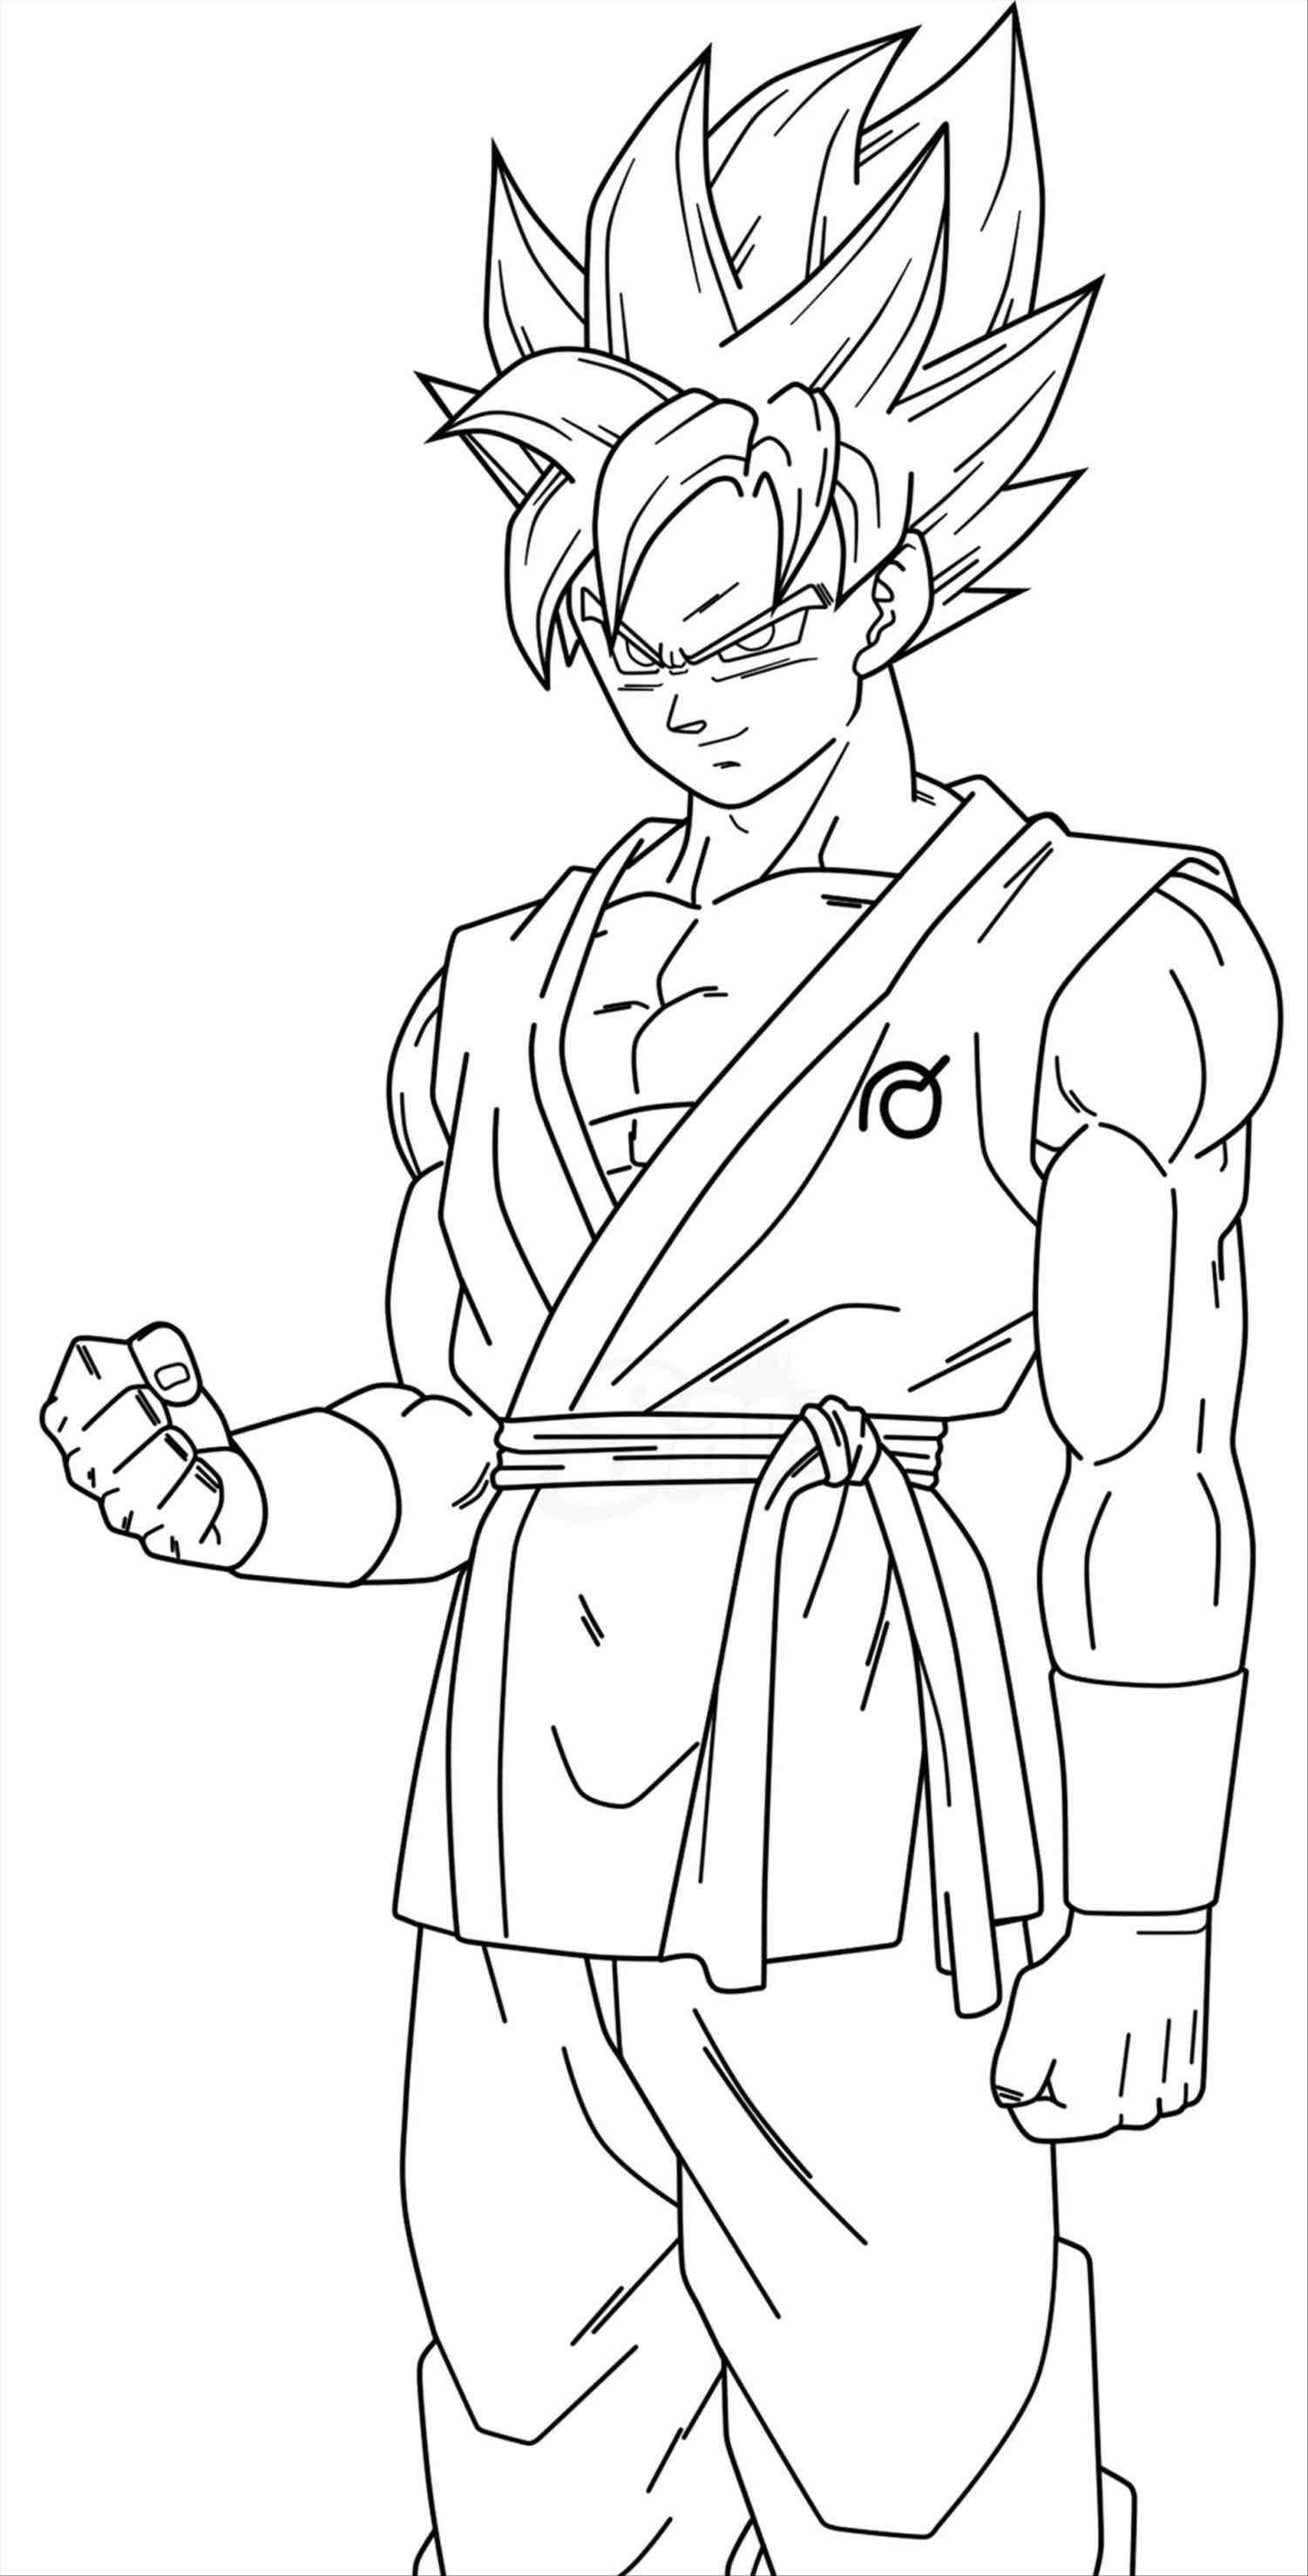 Goku super saiyan coloring pages